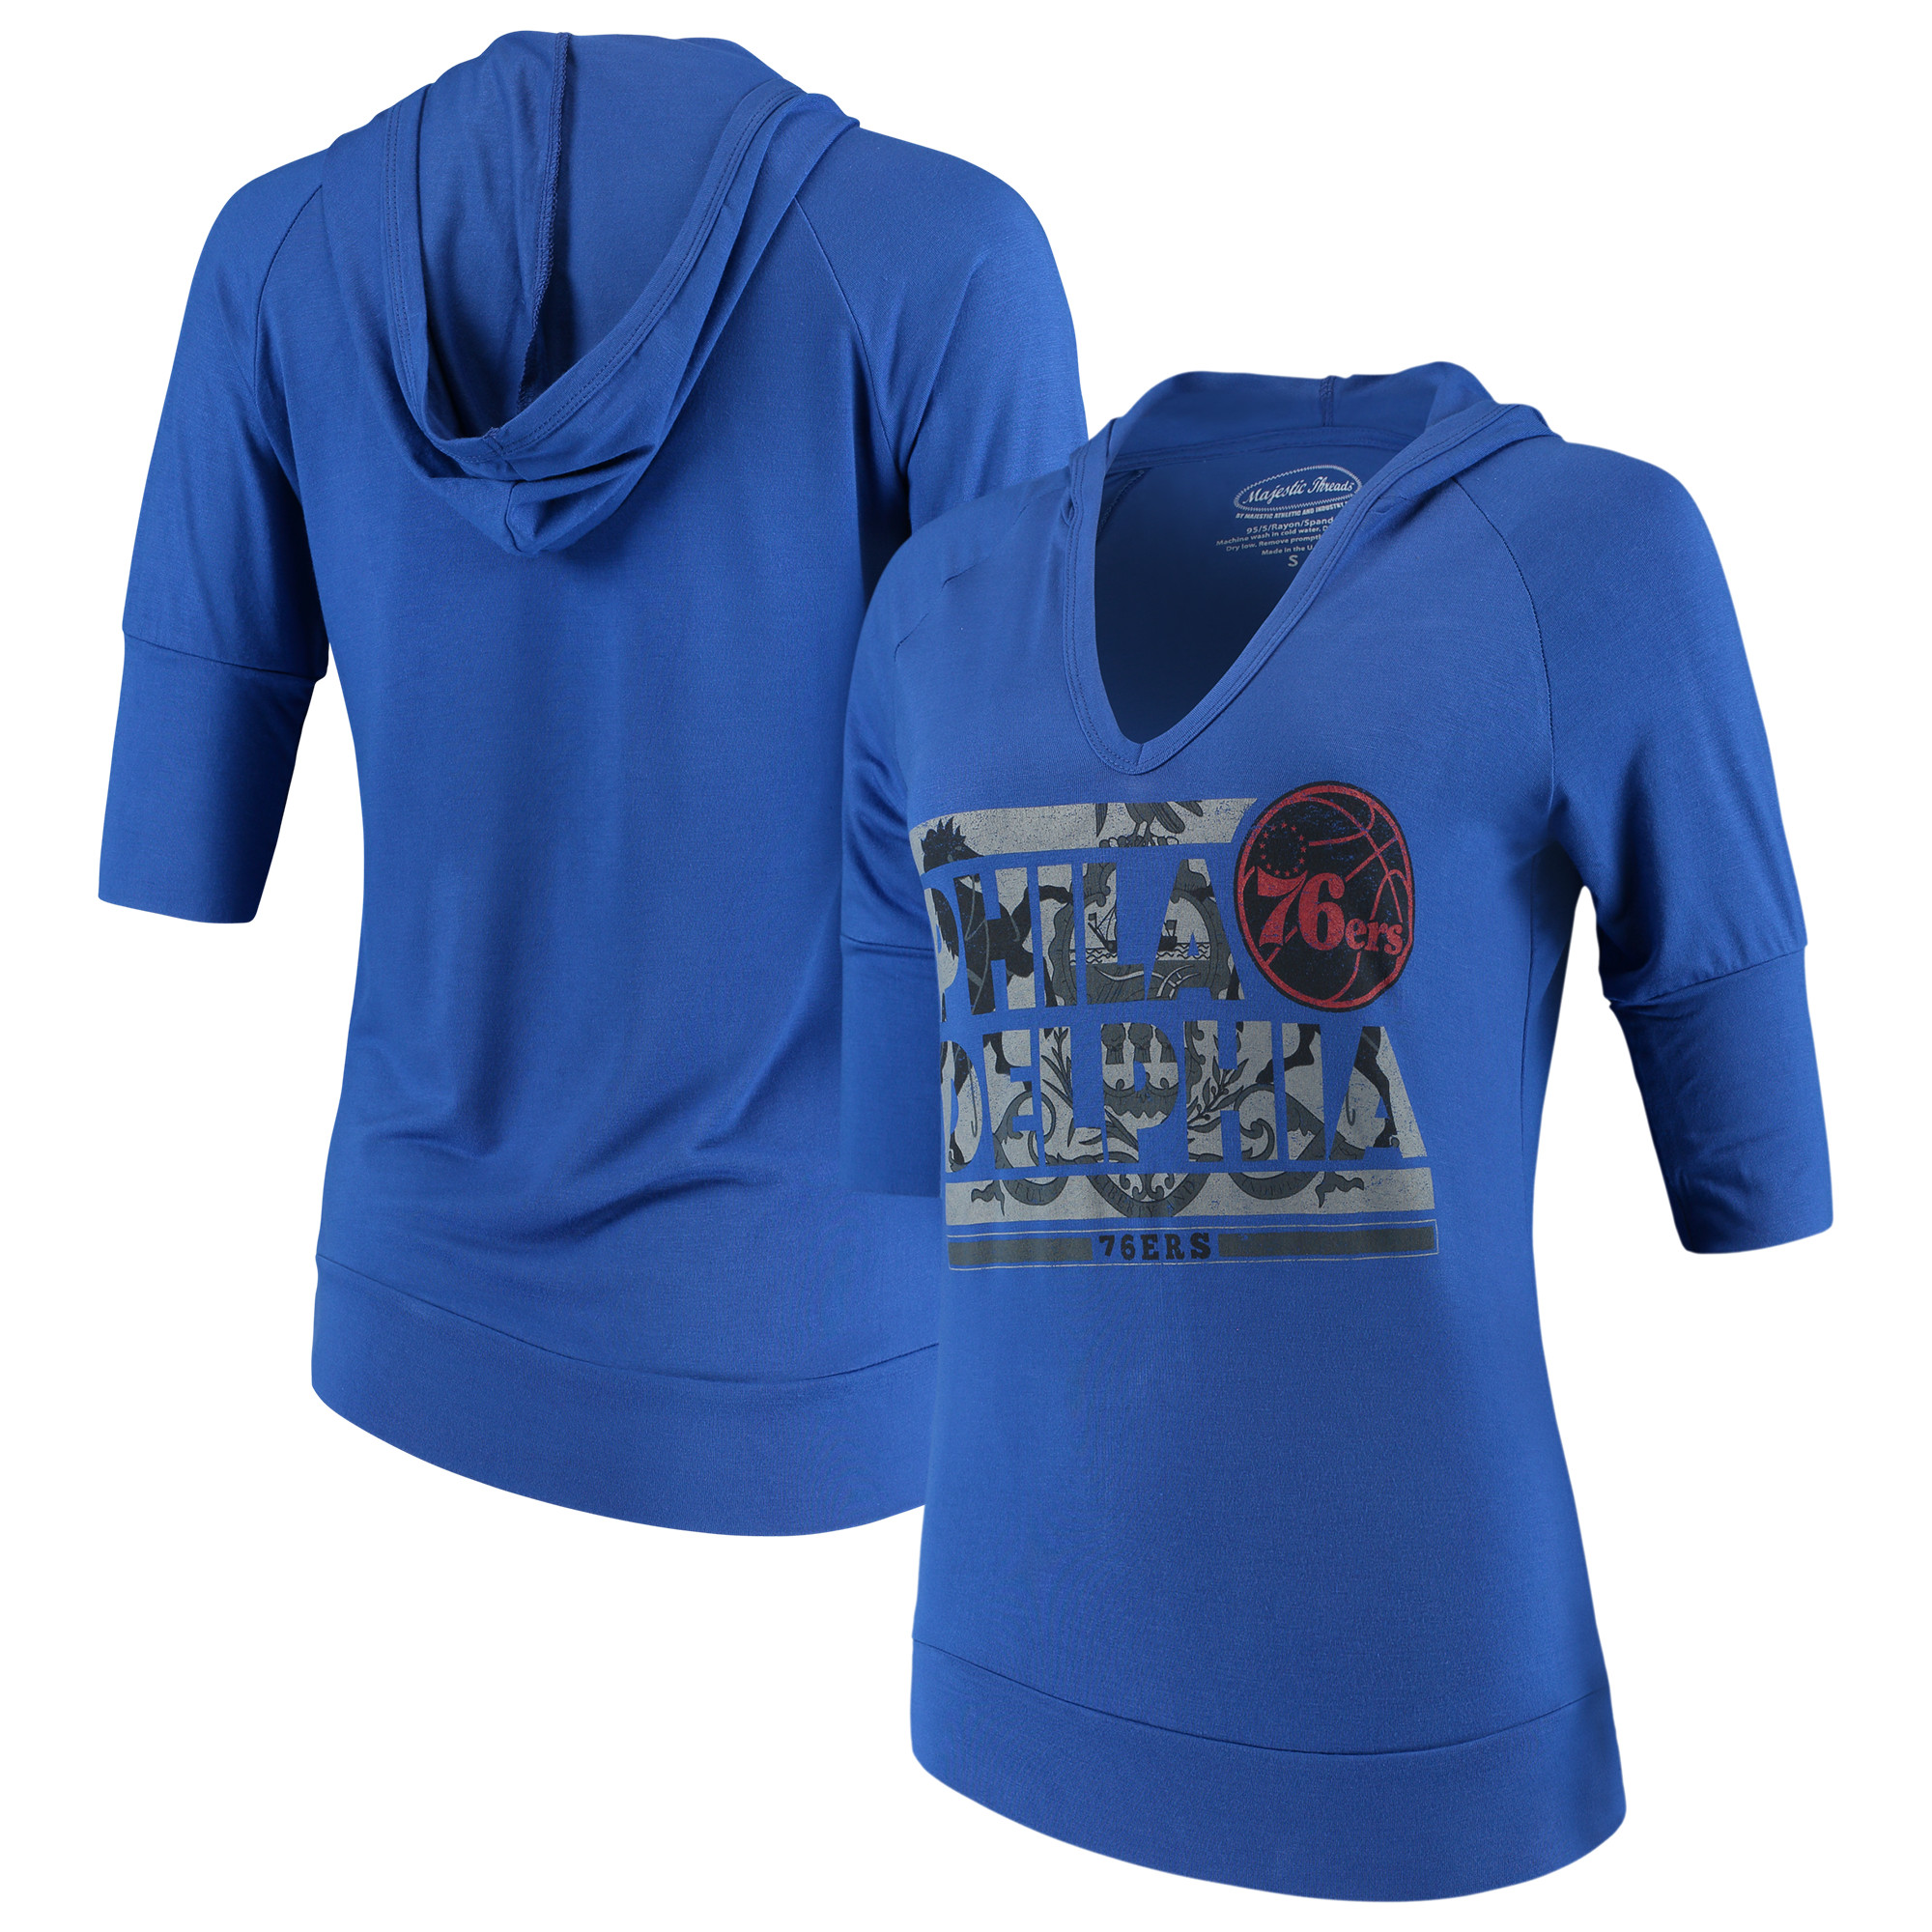 Philadelphia 76ers Majestic Threads Women's City State Elbow Sleeve V-Neck Hooded Pullover Top - Royal